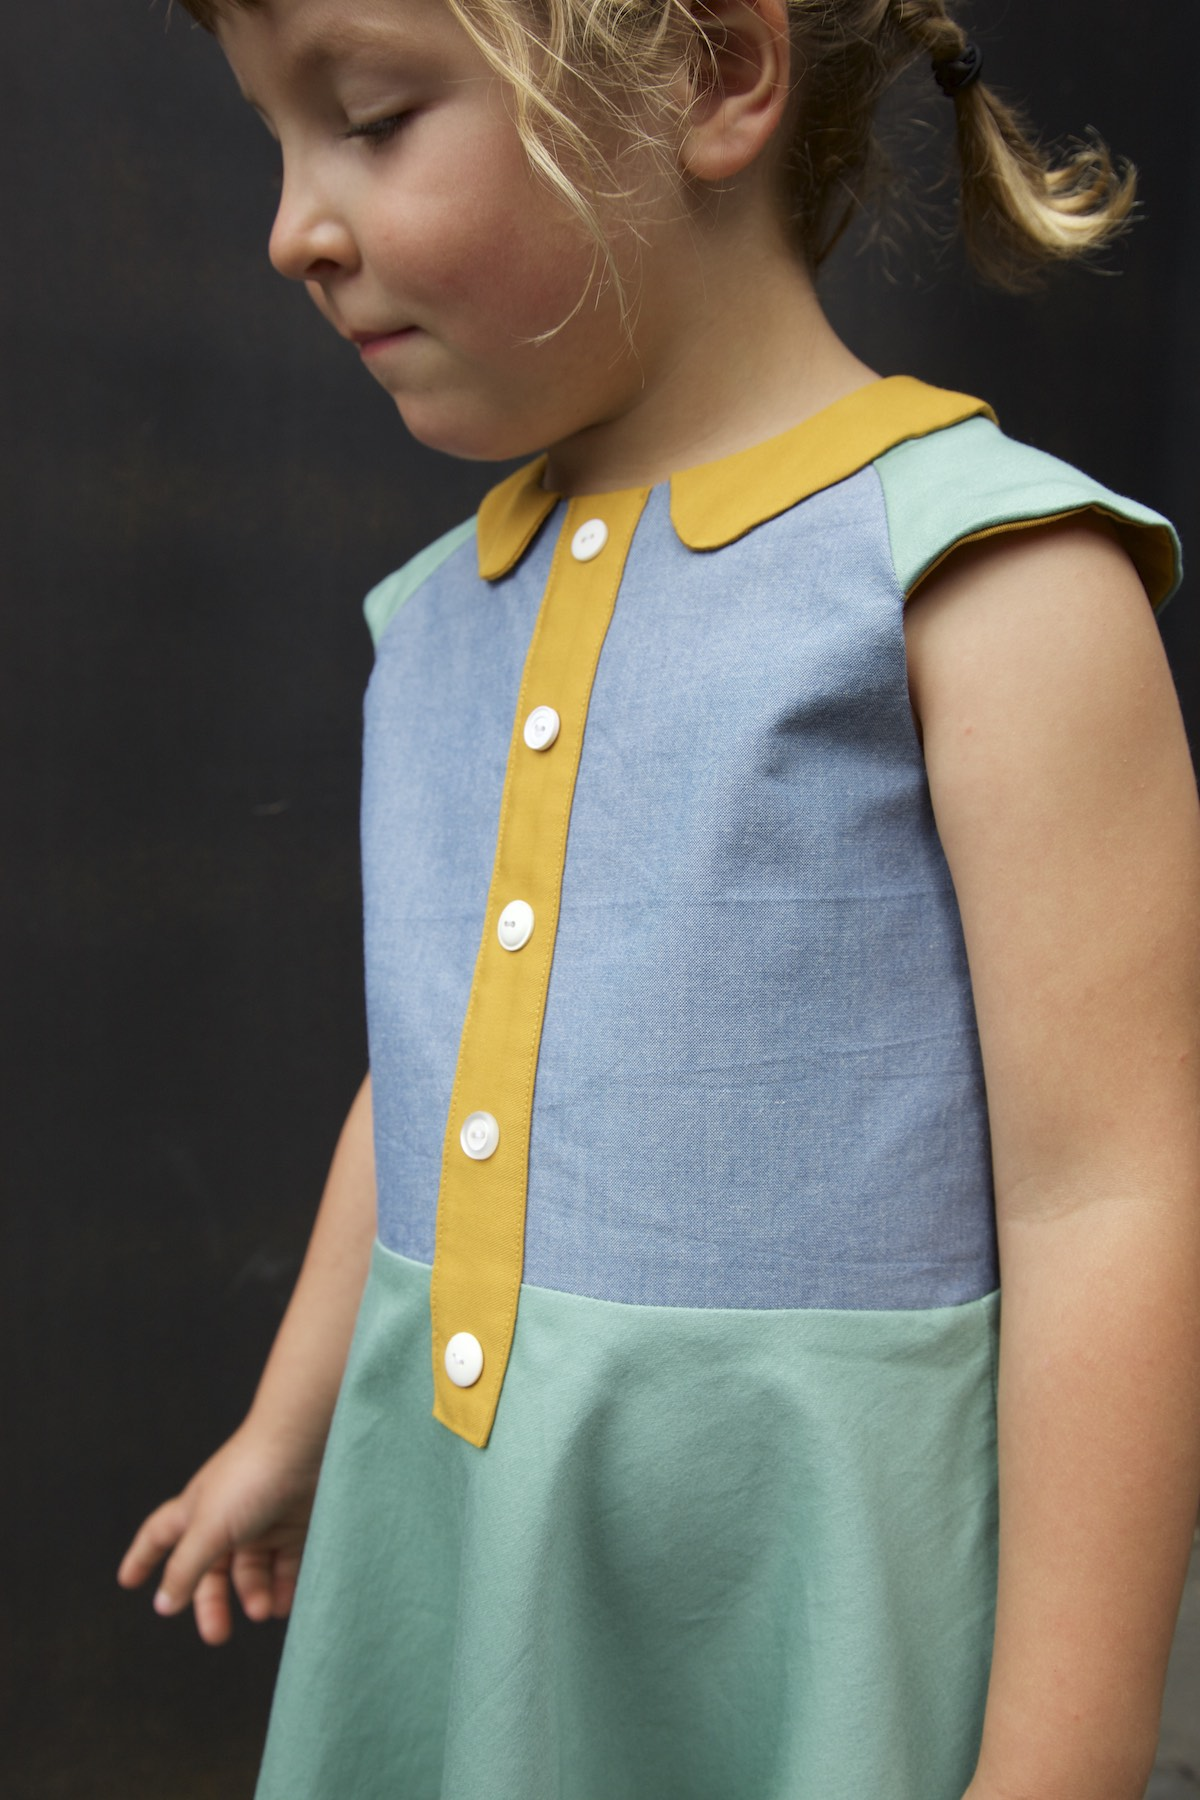 The Ileana dress combines a fitted bodice with a full or half circular skirt. Two bodice types (raglan & regular) make this a versatile pattern. Use one of the several collars, sleeves, pockets and faux button plackets to add your personal touch.